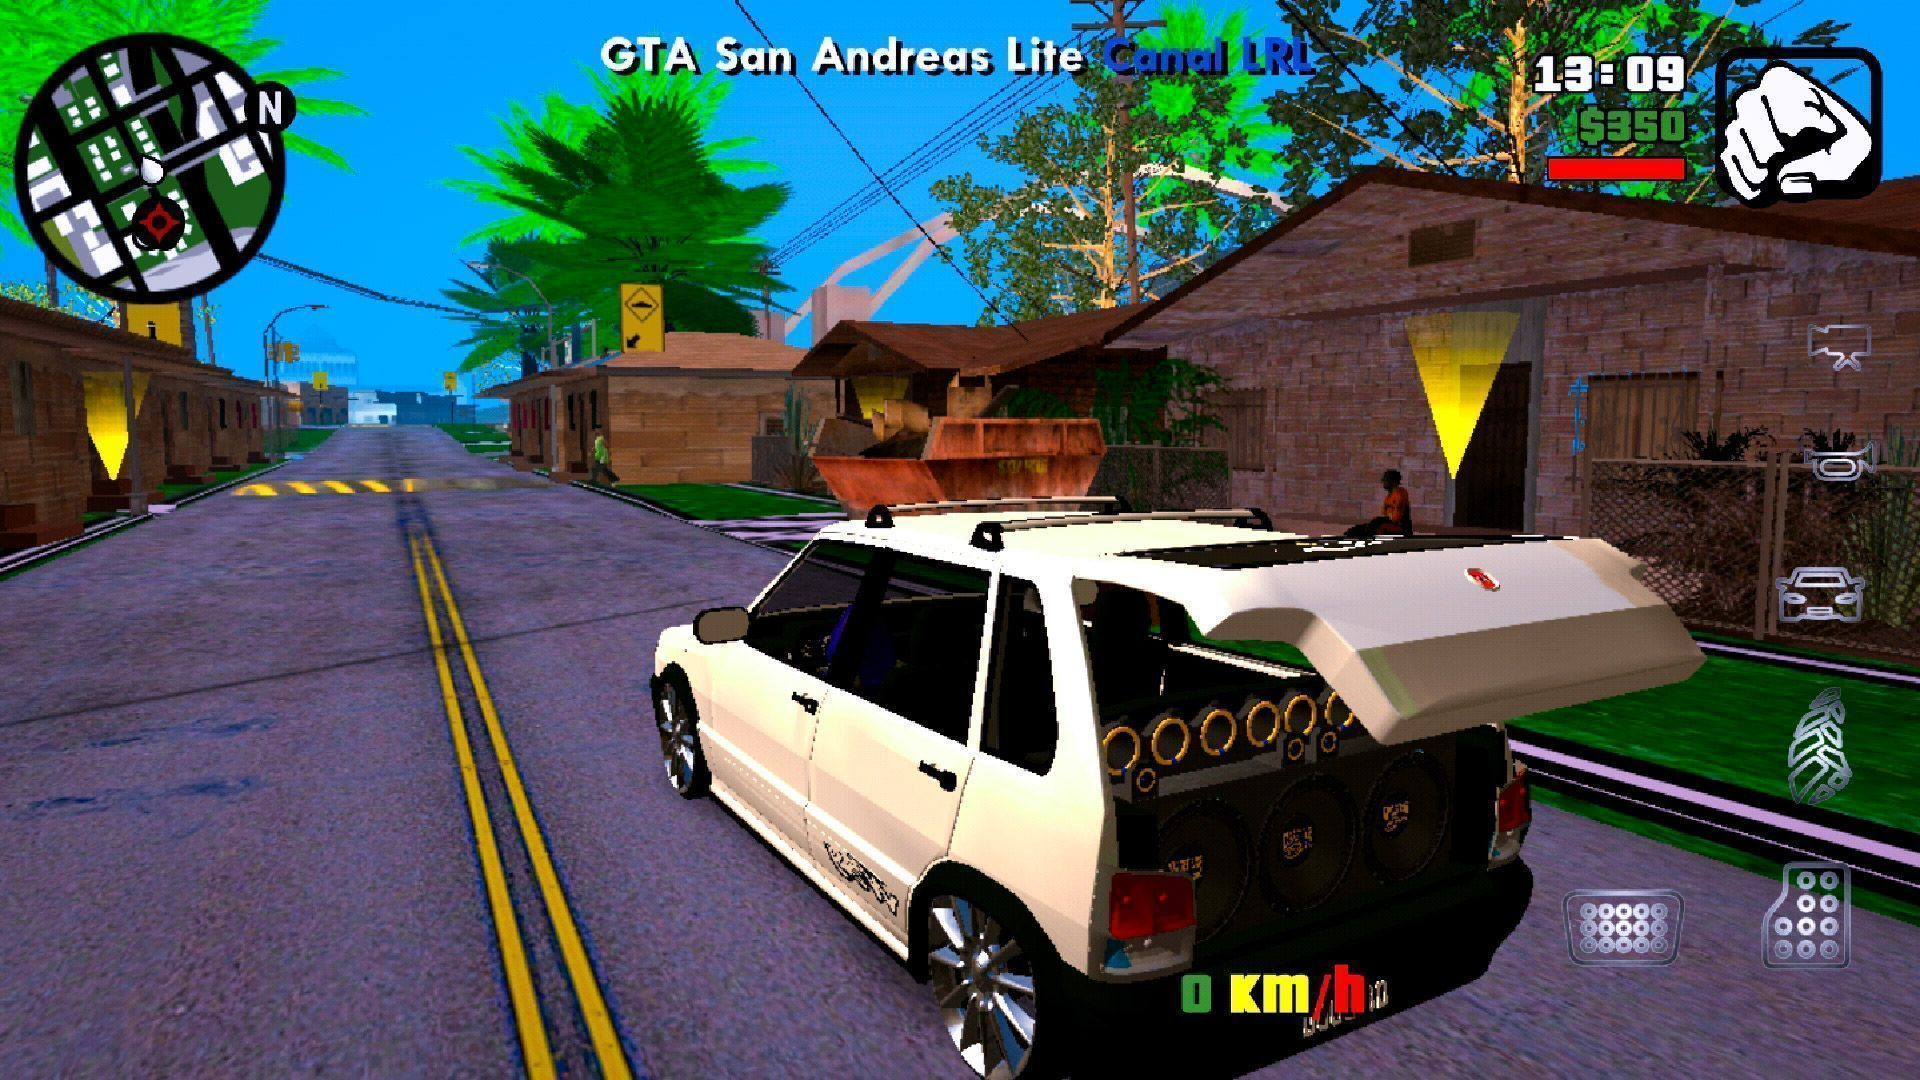 PSX 20190516 091904 - GTA Modificado para Android (565MB) apk+data